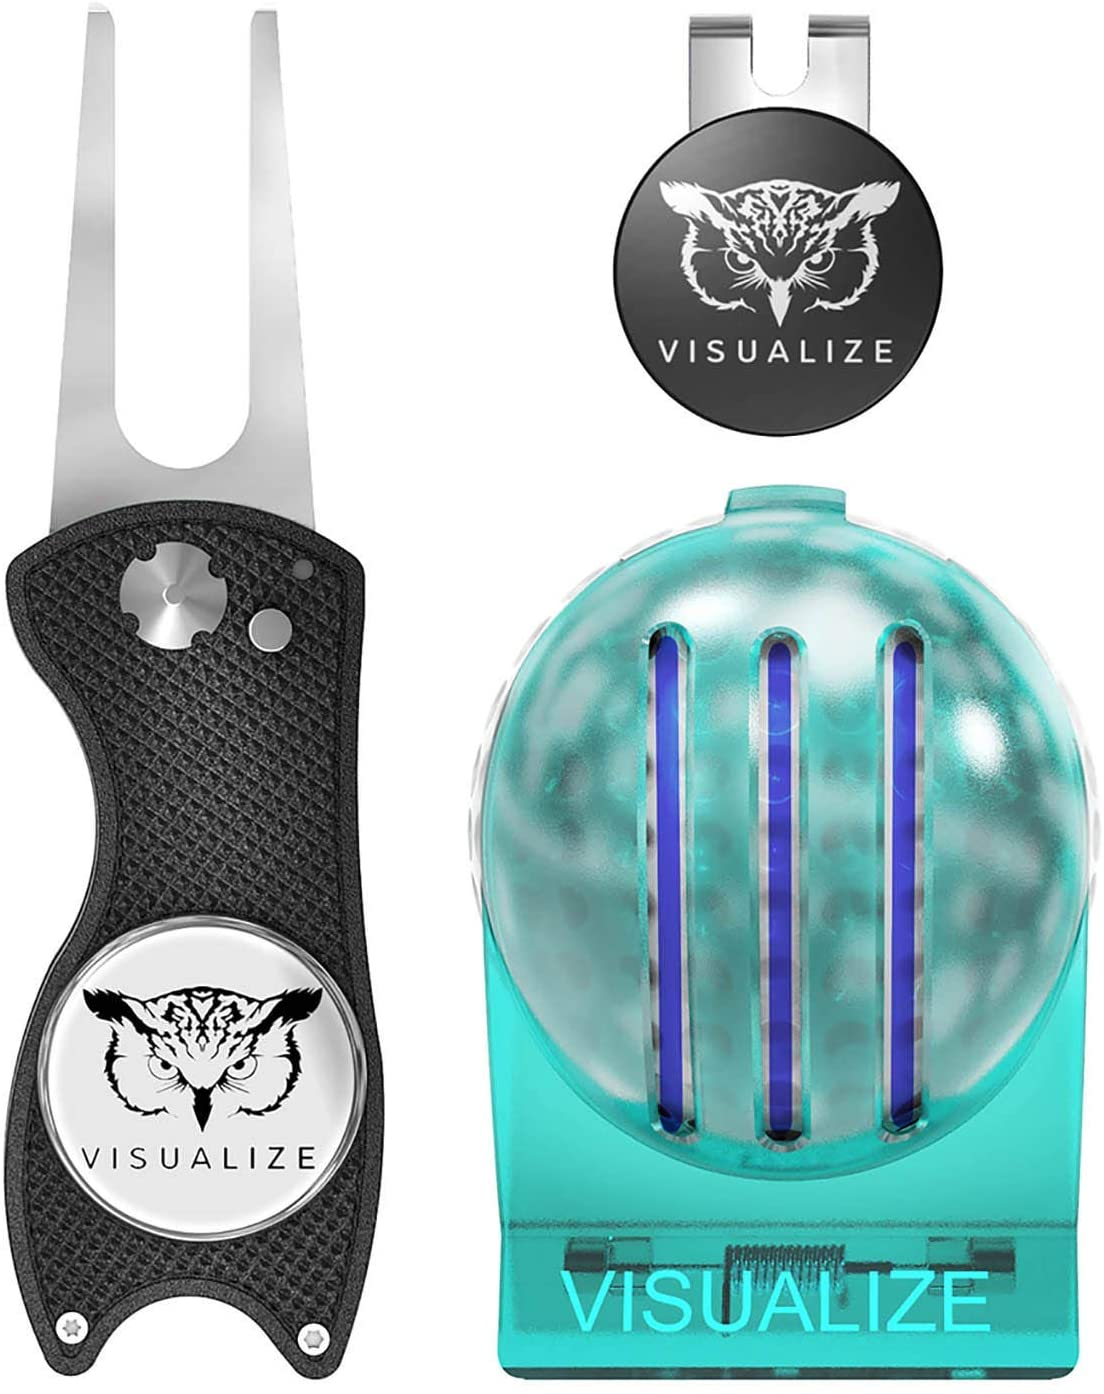 VISUALIZE Golf Accessories Gift Bundle #1- Tri-Line 3 Line Golf Ball Marker + Premium Divot Tool with Ball Marker + Hat Clip with Ball Marker - Gift for Your #1 Golfer (Black)